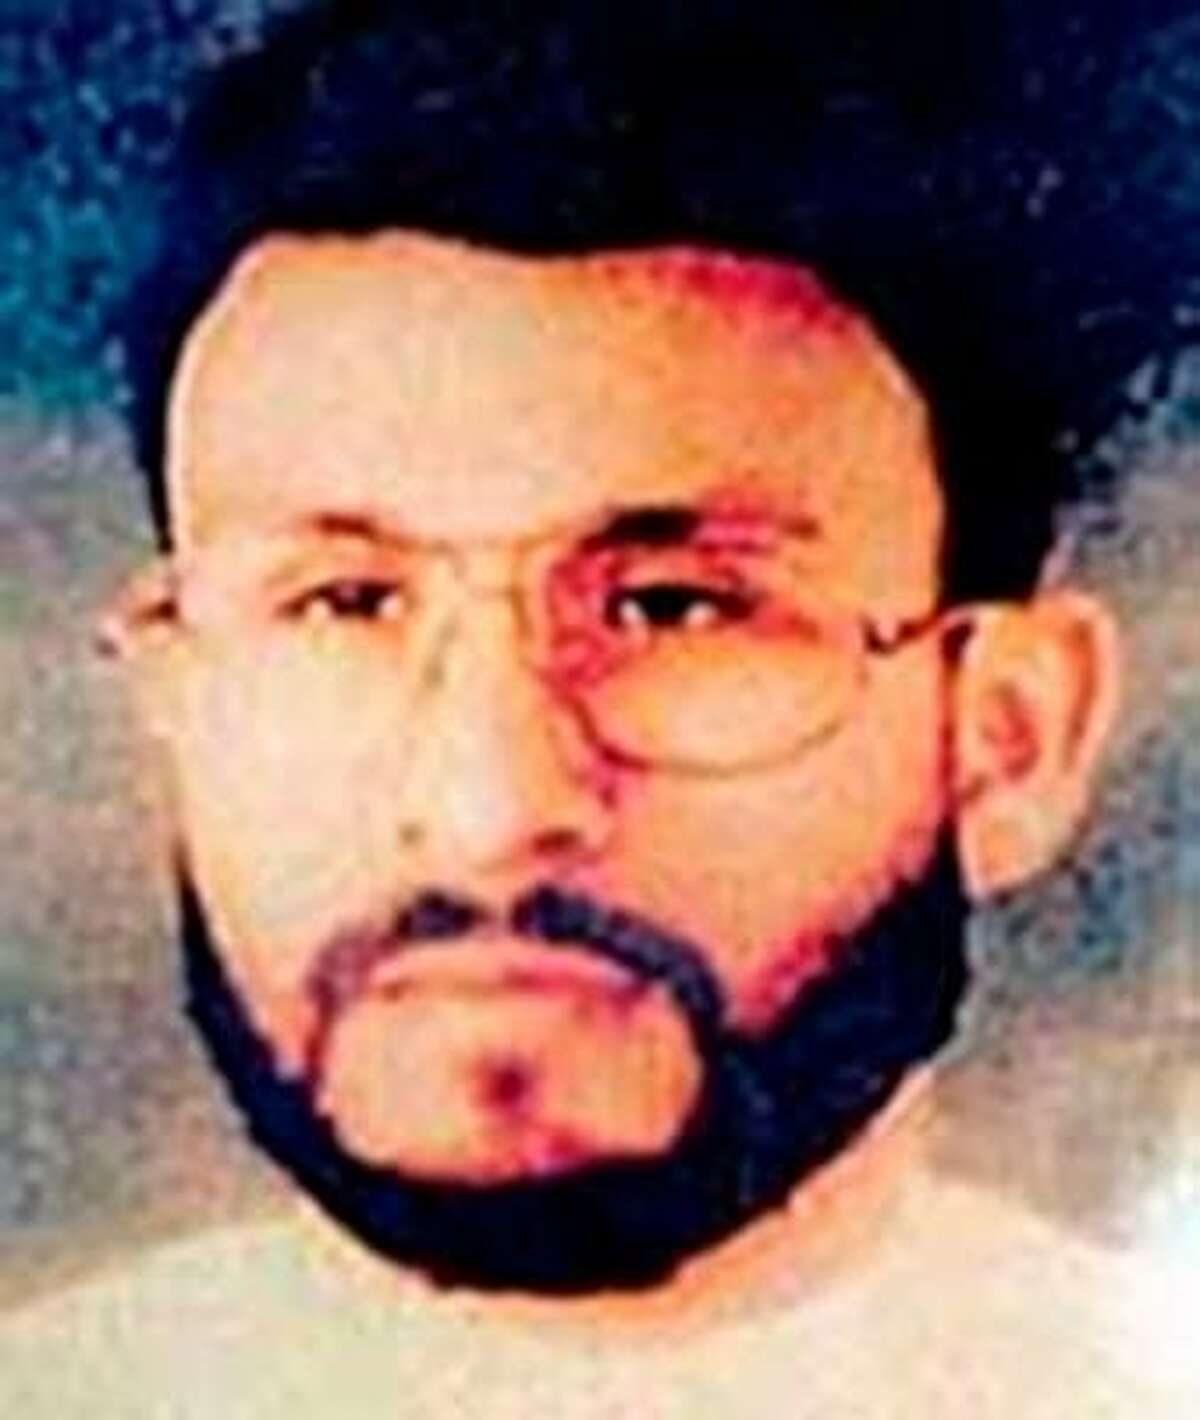 This photo provided by U.S. Central Command, shows Abu Zubaydah, date and location unknown. (AP Photo/U.S. Central Command)